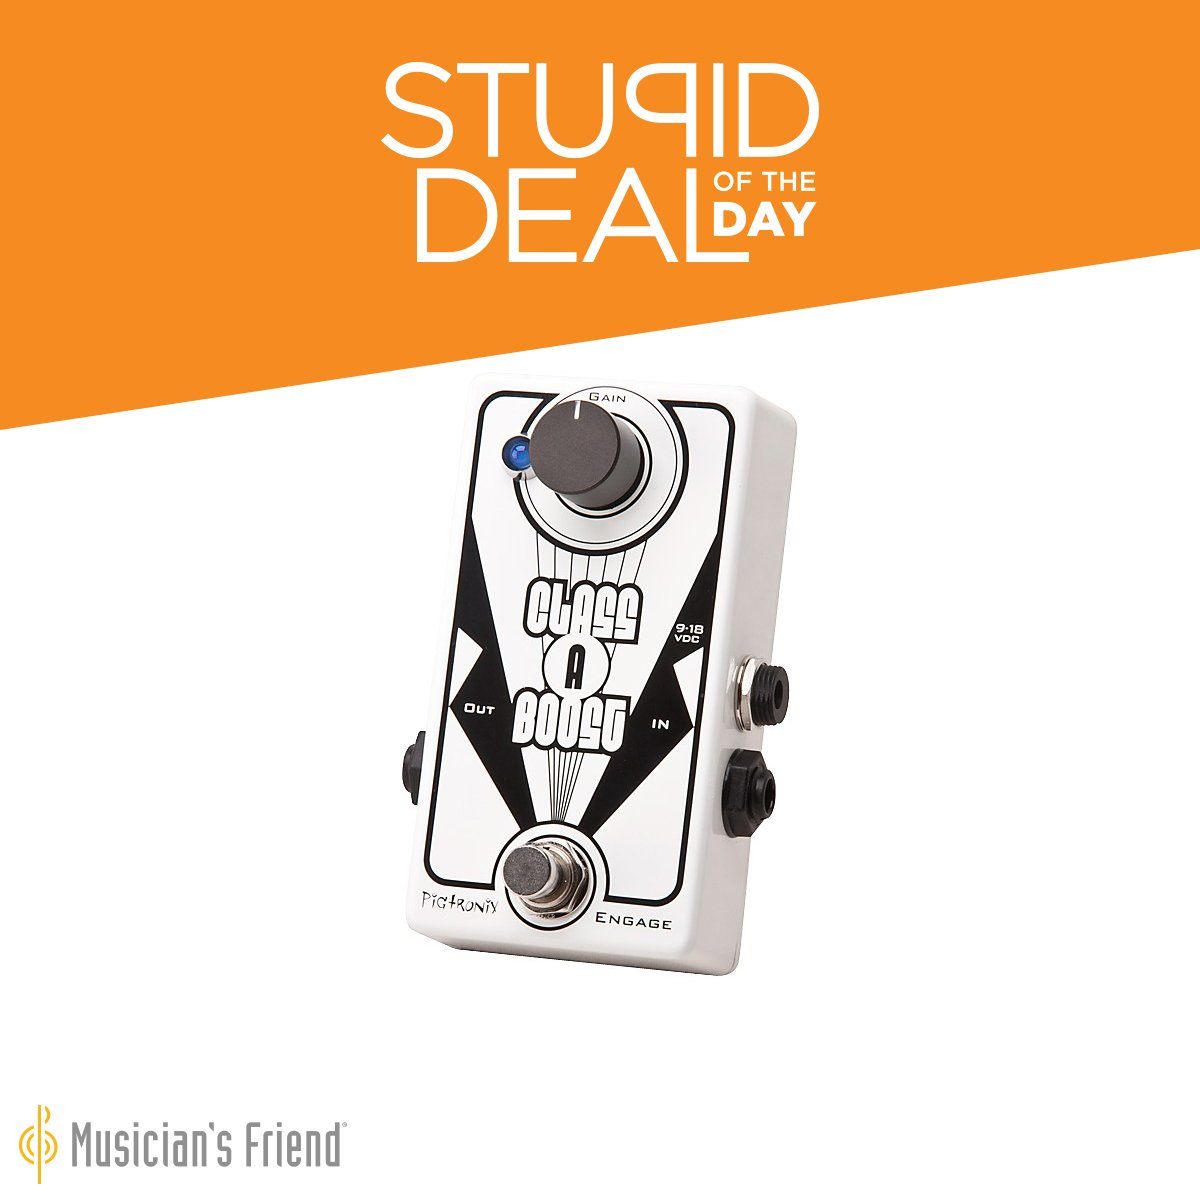 musician 39 s friend on twitter stupid deal of the day 1 16 17 pigtronix class a boost guitar. Black Bedroom Furniture Sets. Home Design Ideas